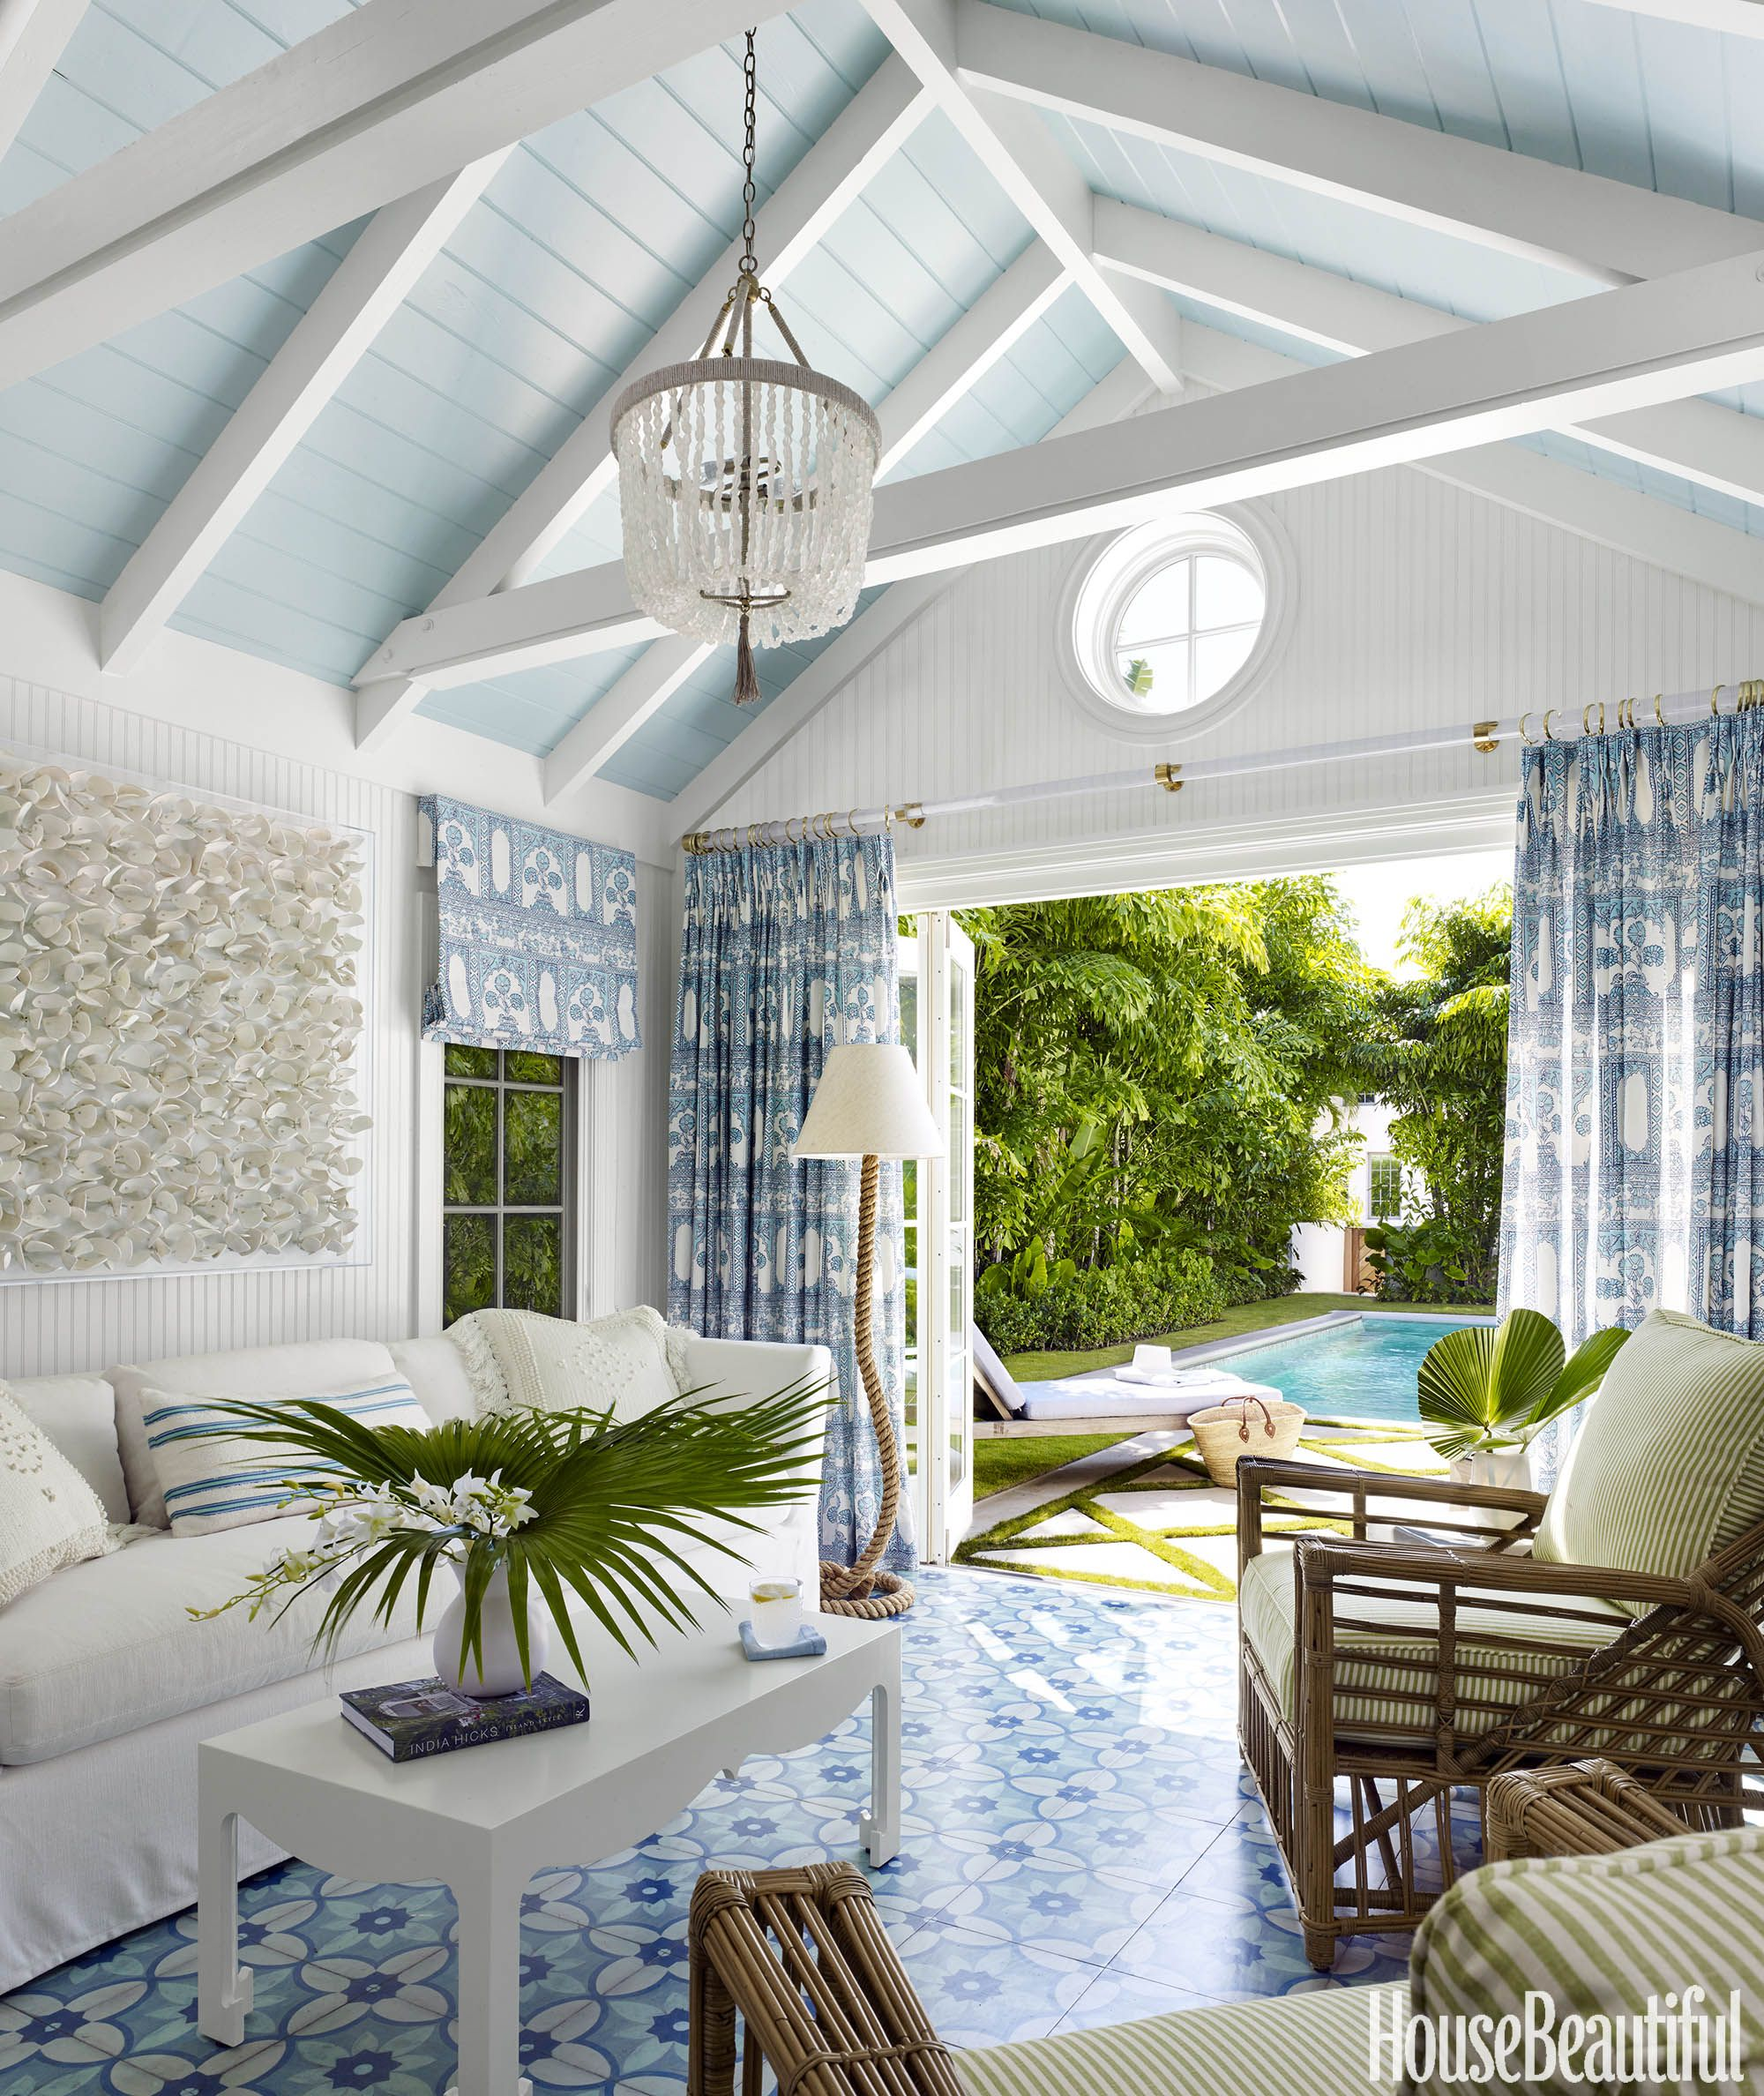 The Perfect Pool House Pool House Designs Beach House Interior